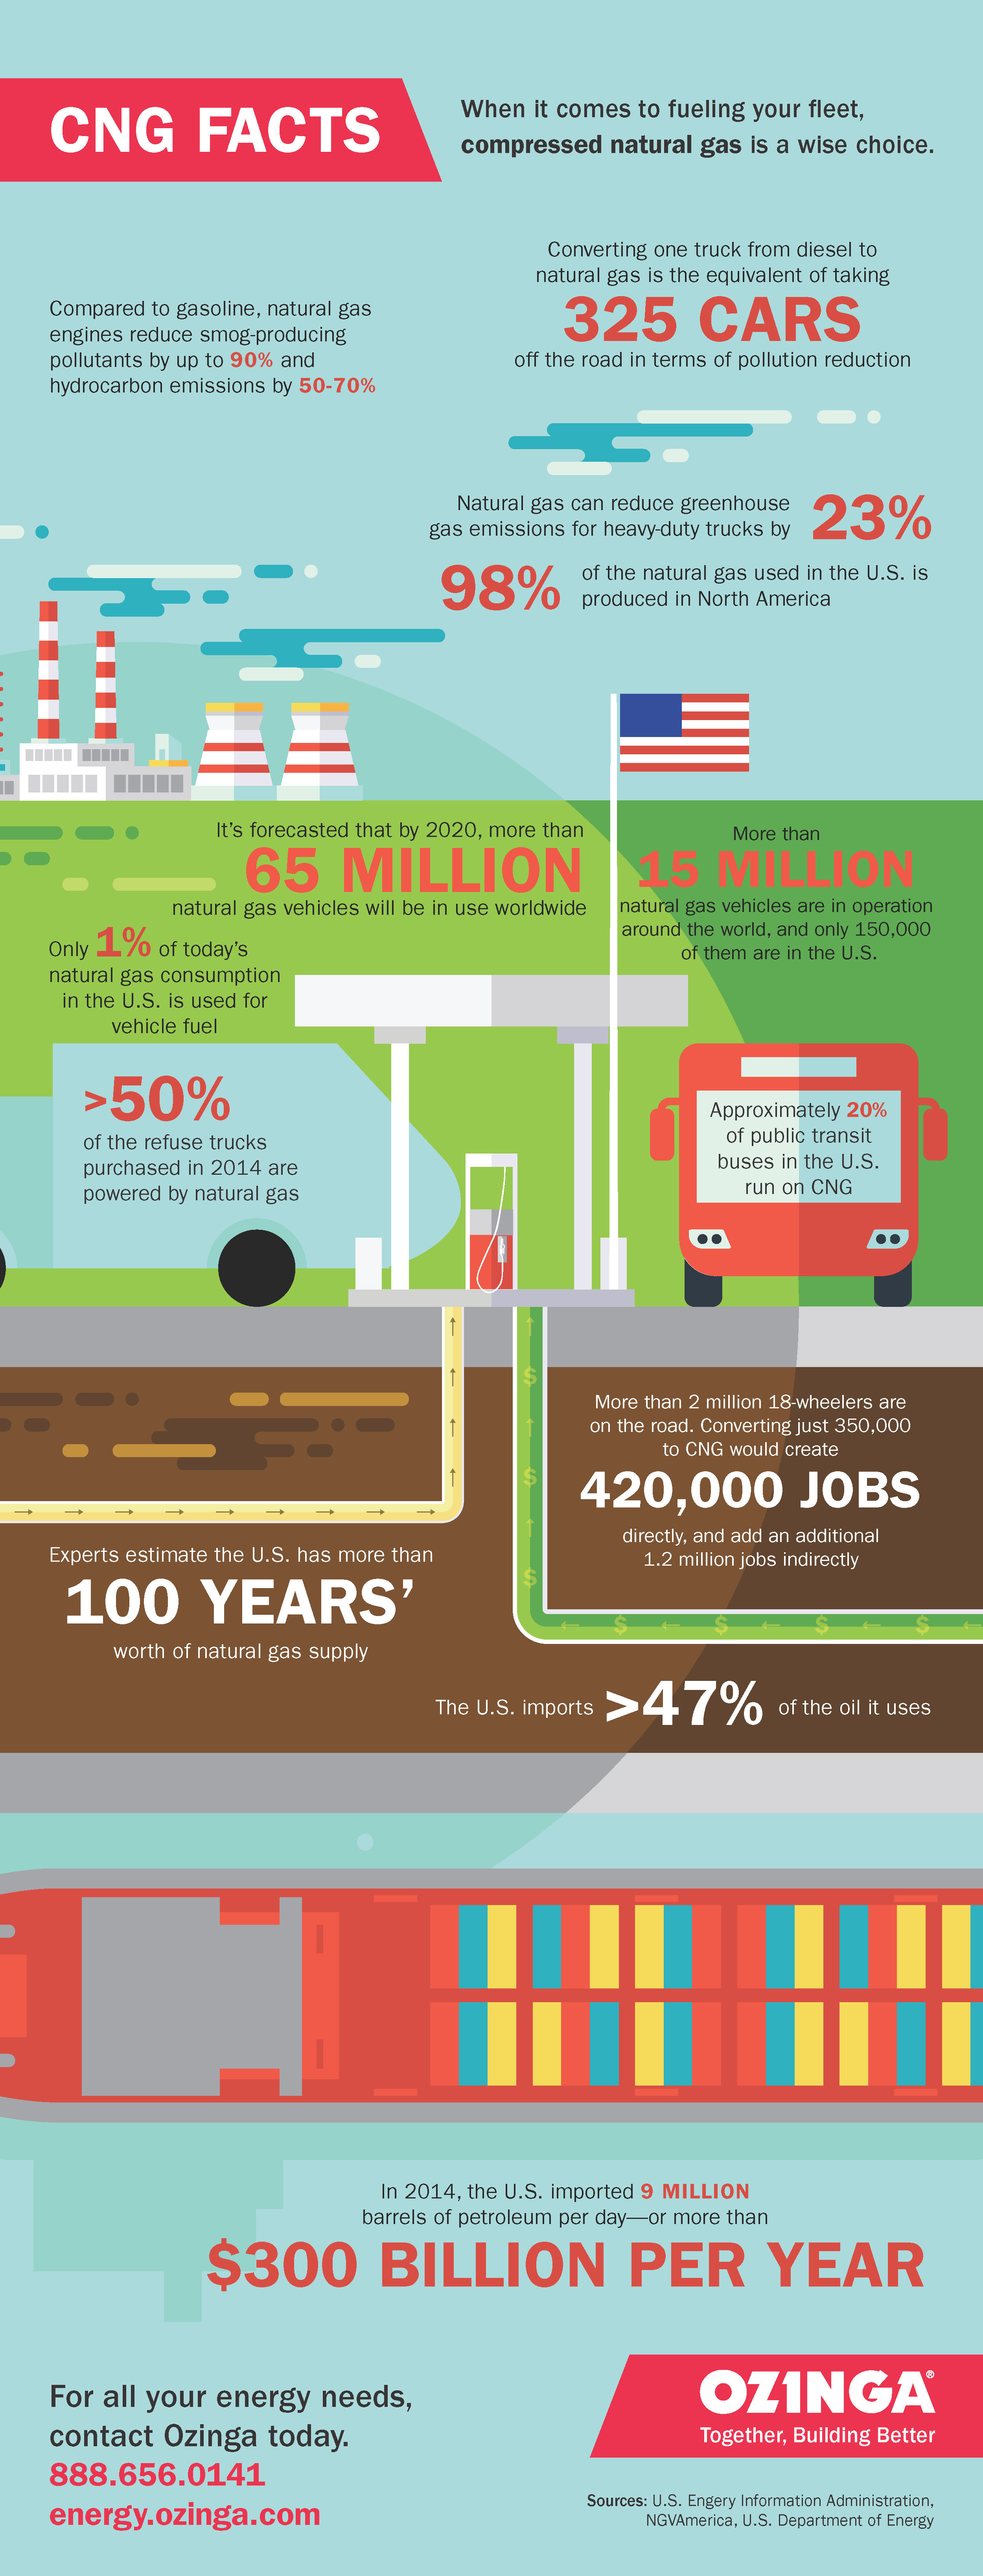 CNG-Facts-Infographic_v8_HALF-PAGE_no-crops.jpg